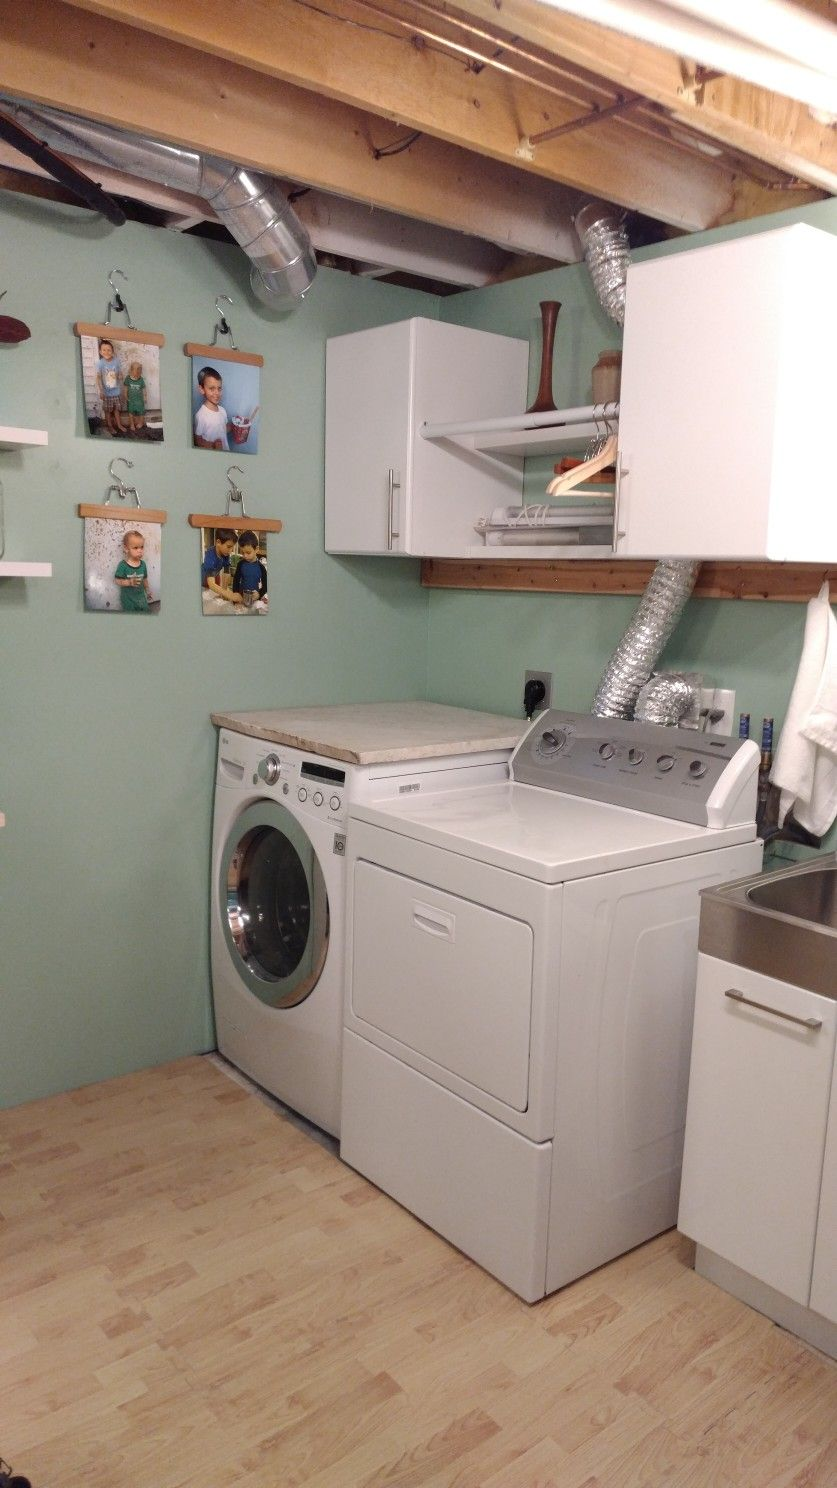 Remodeled Laundry Room With Home Depot Cabinets And Photos In